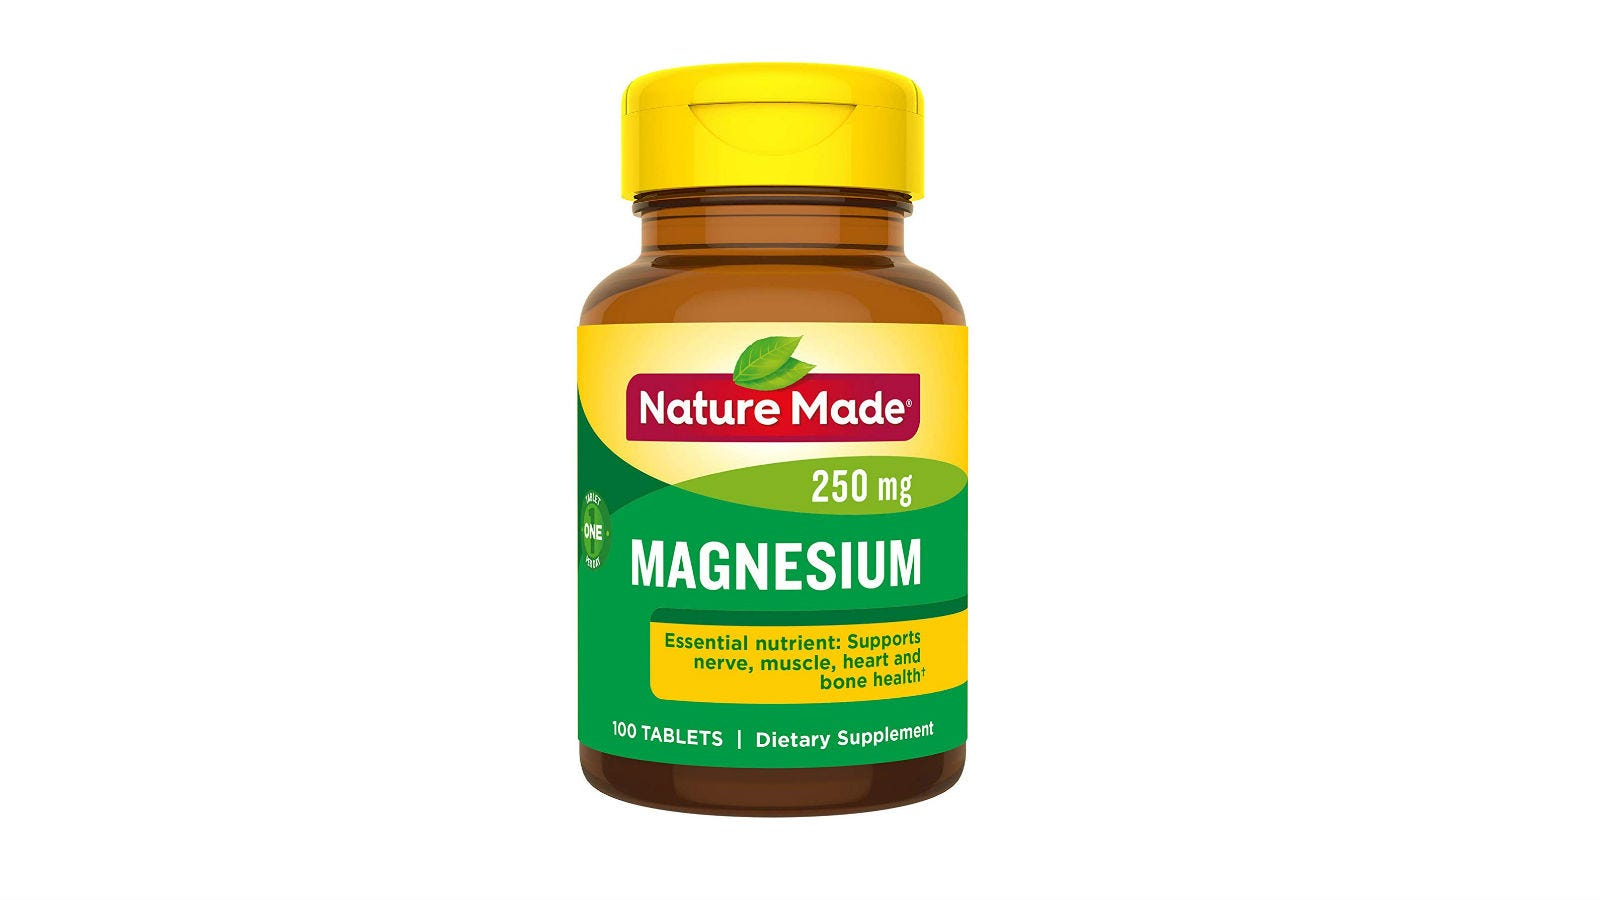 A bottle of Nature Made Magnesium Oxide Tablets.